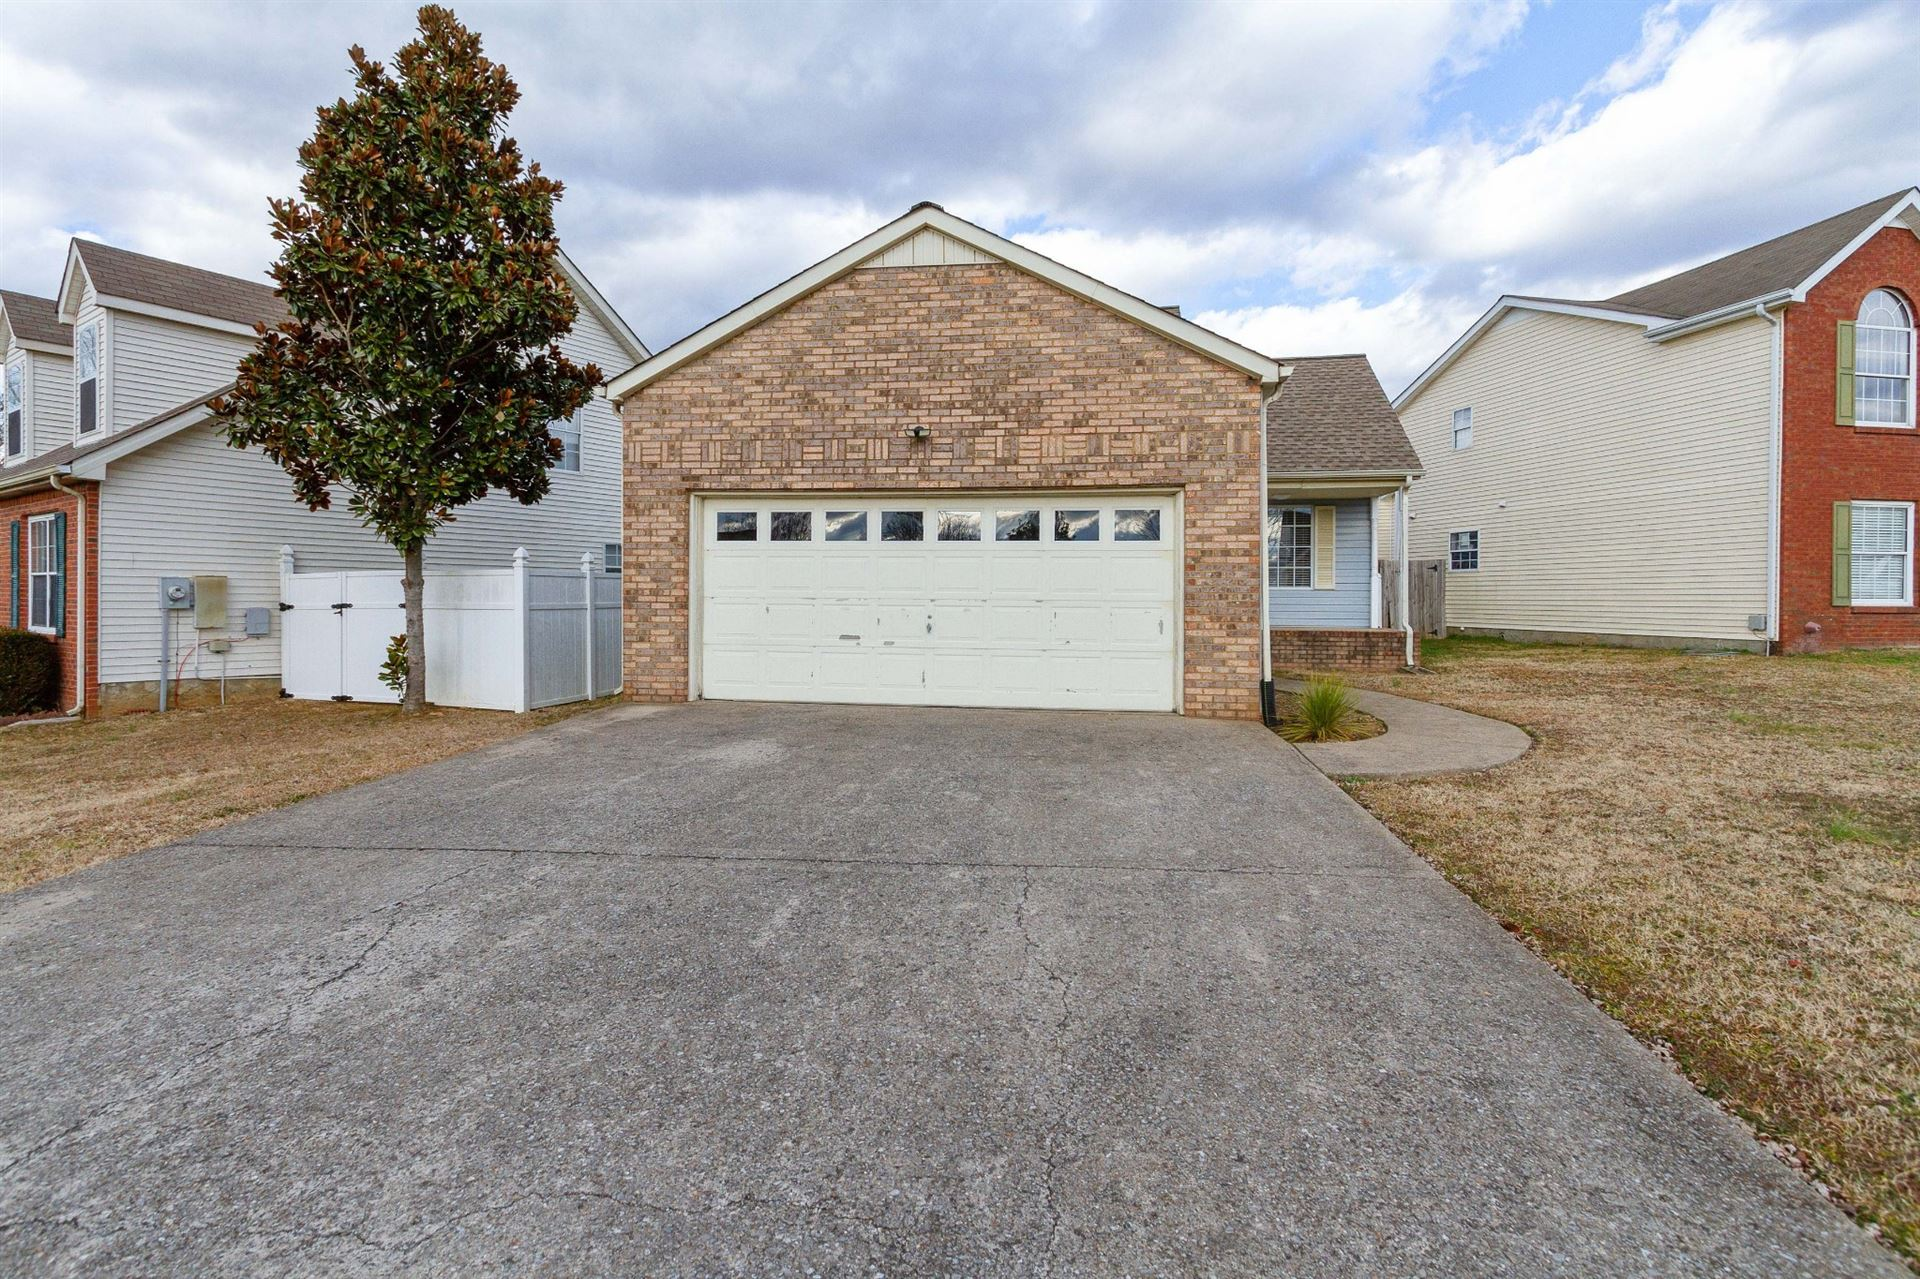 Photo of 616 Federal Ct, Murfreesboro, TN 37129 (MLS # 2222239)